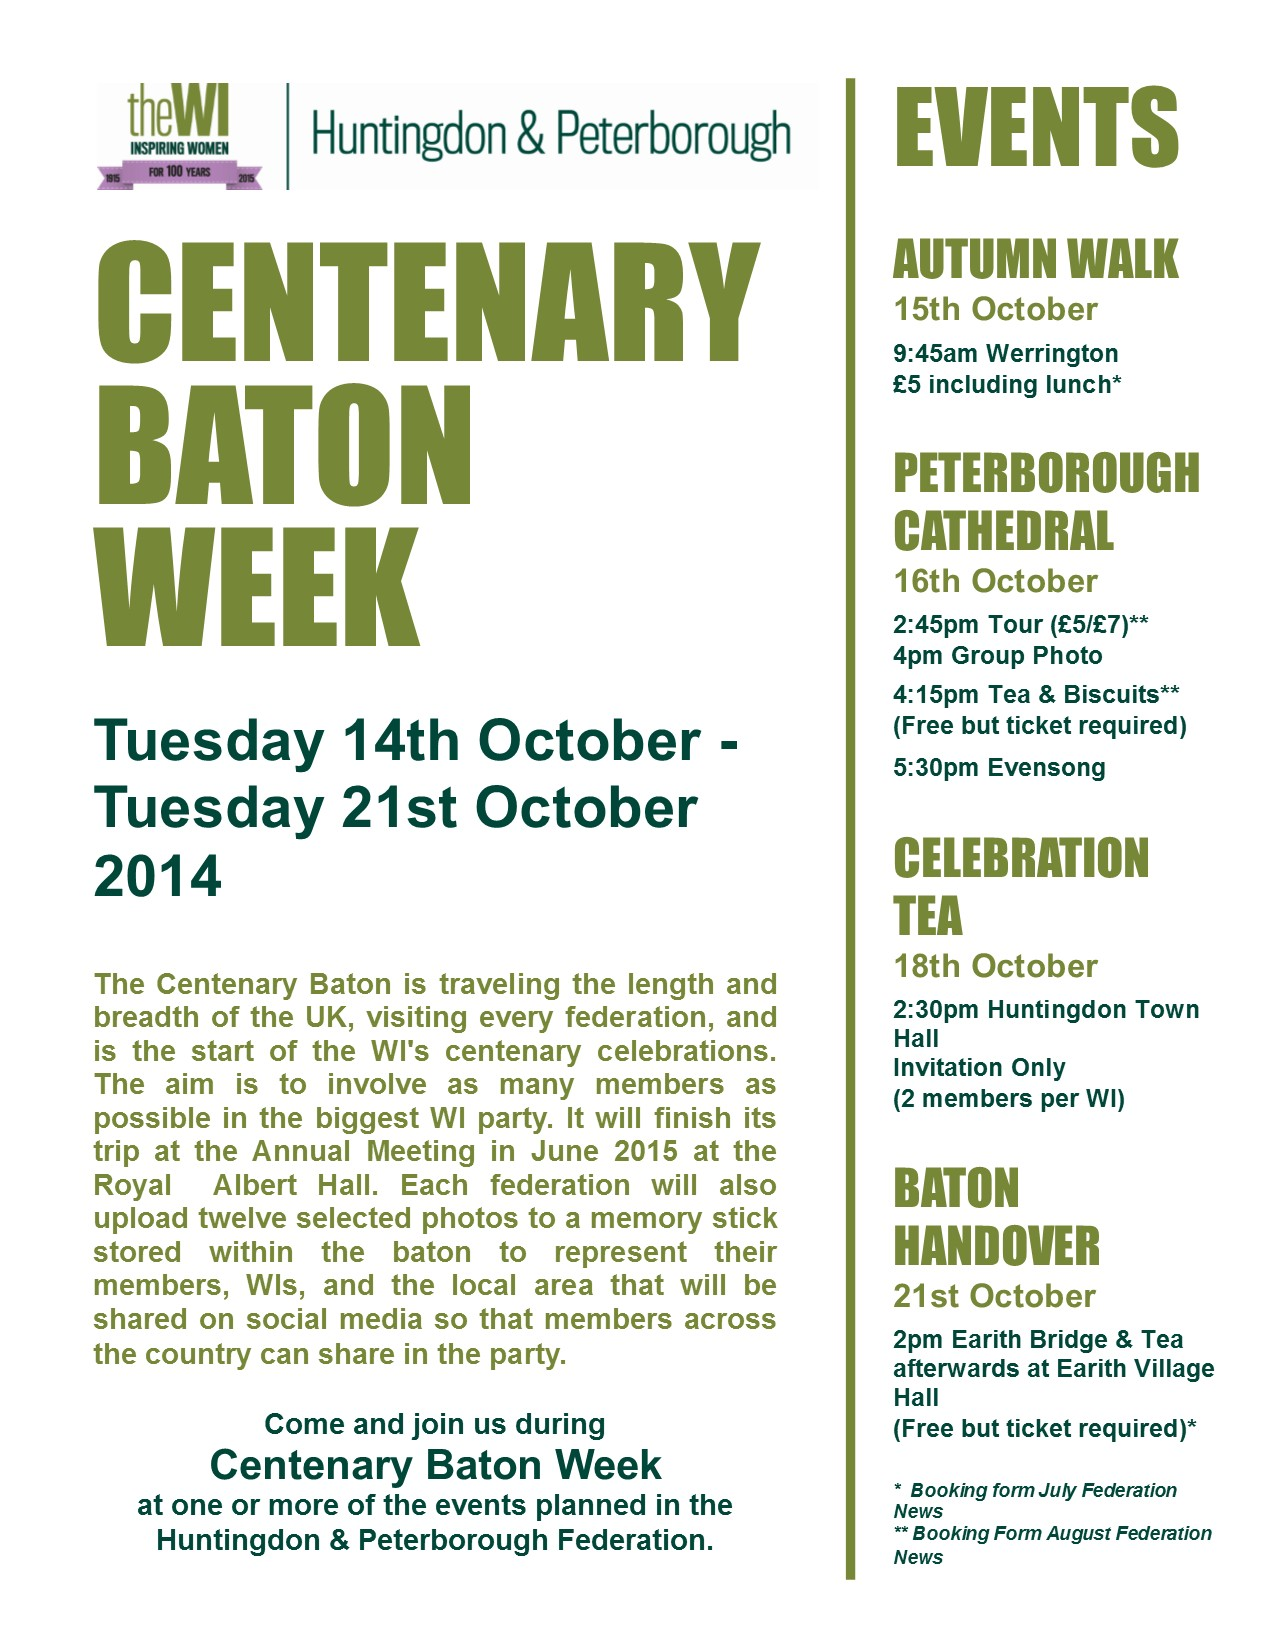 Information about Baton Week